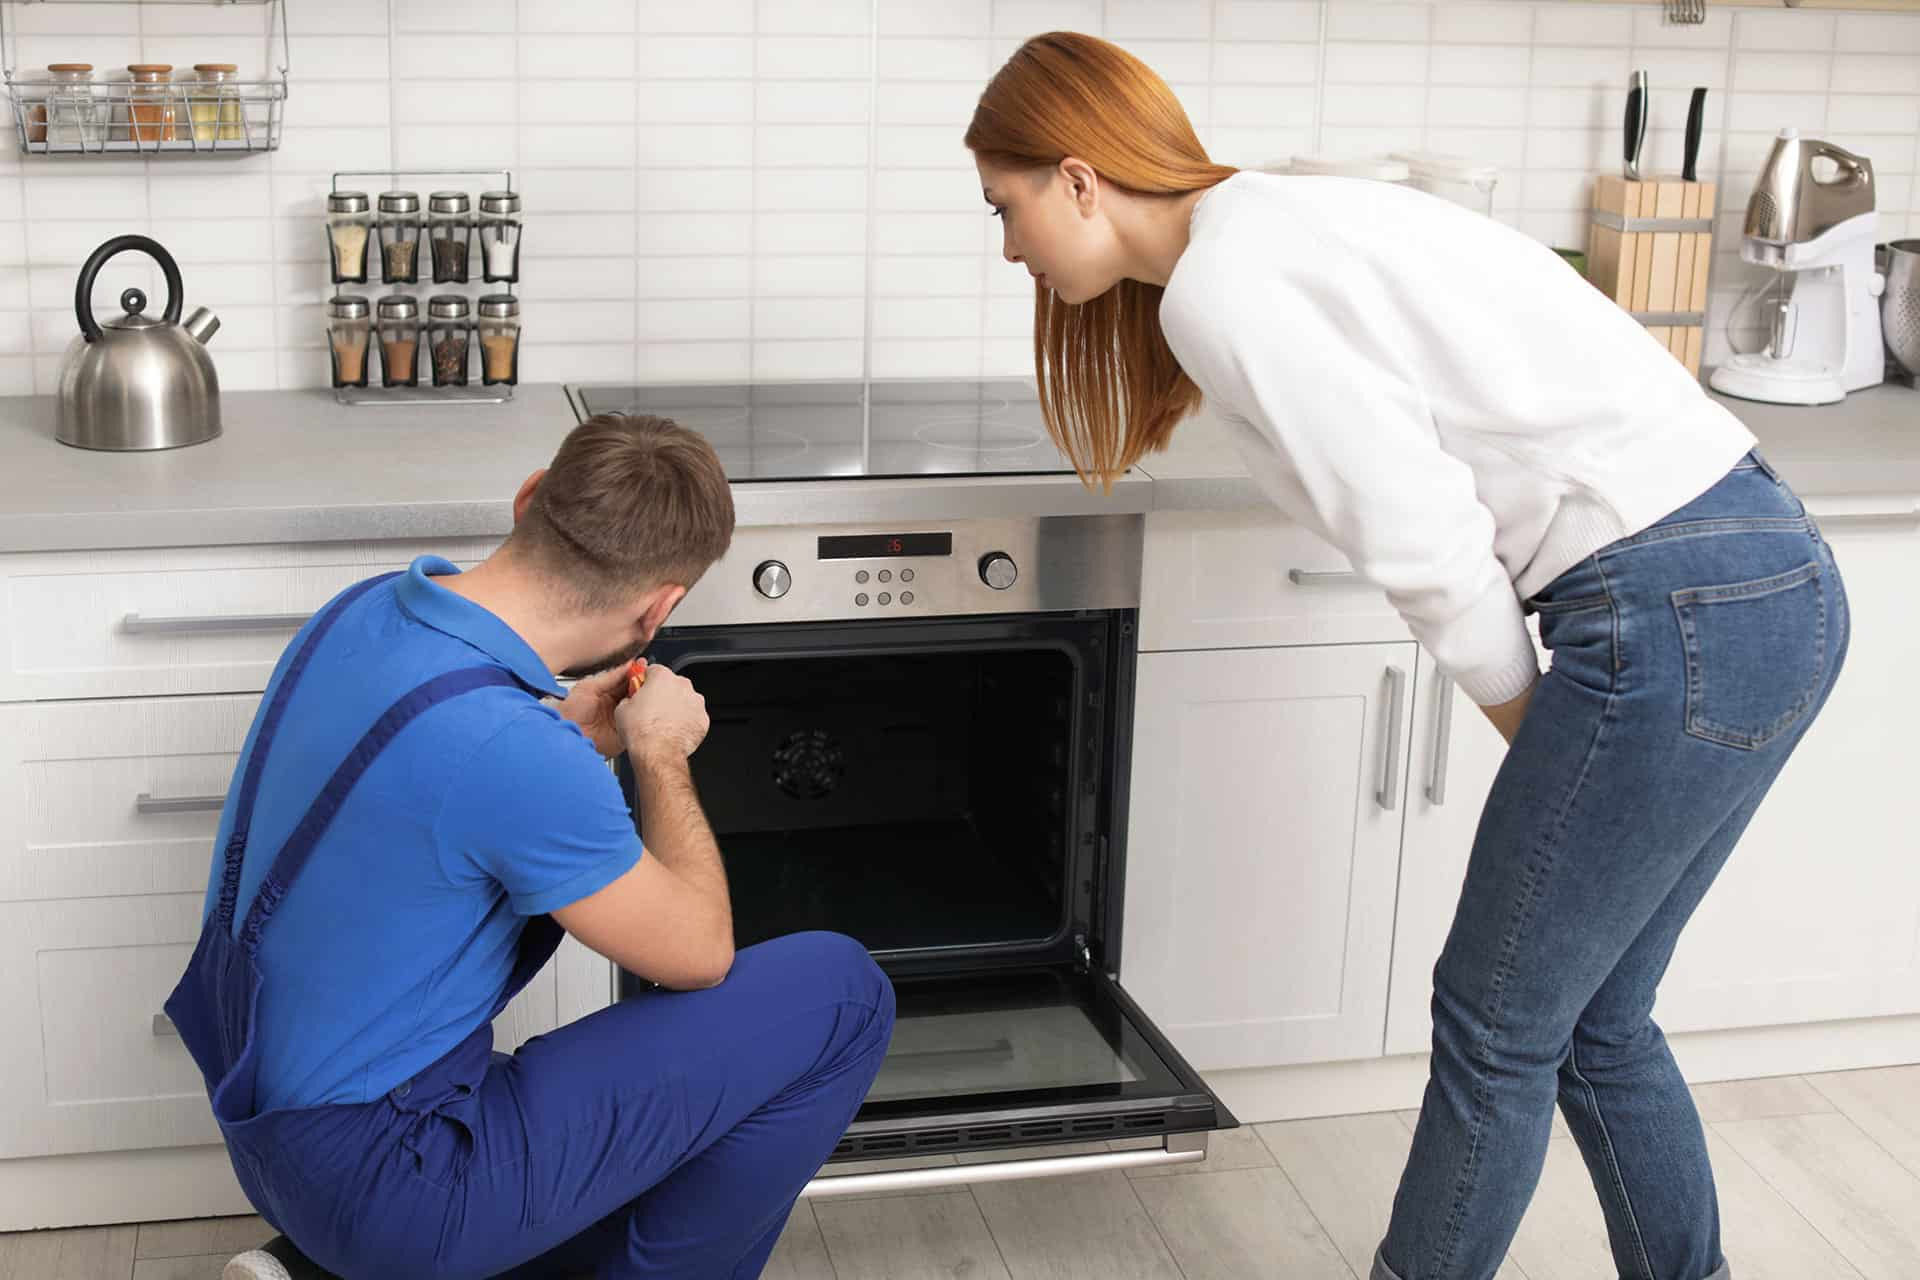 A male mechanic fixing an oven with woman watching him